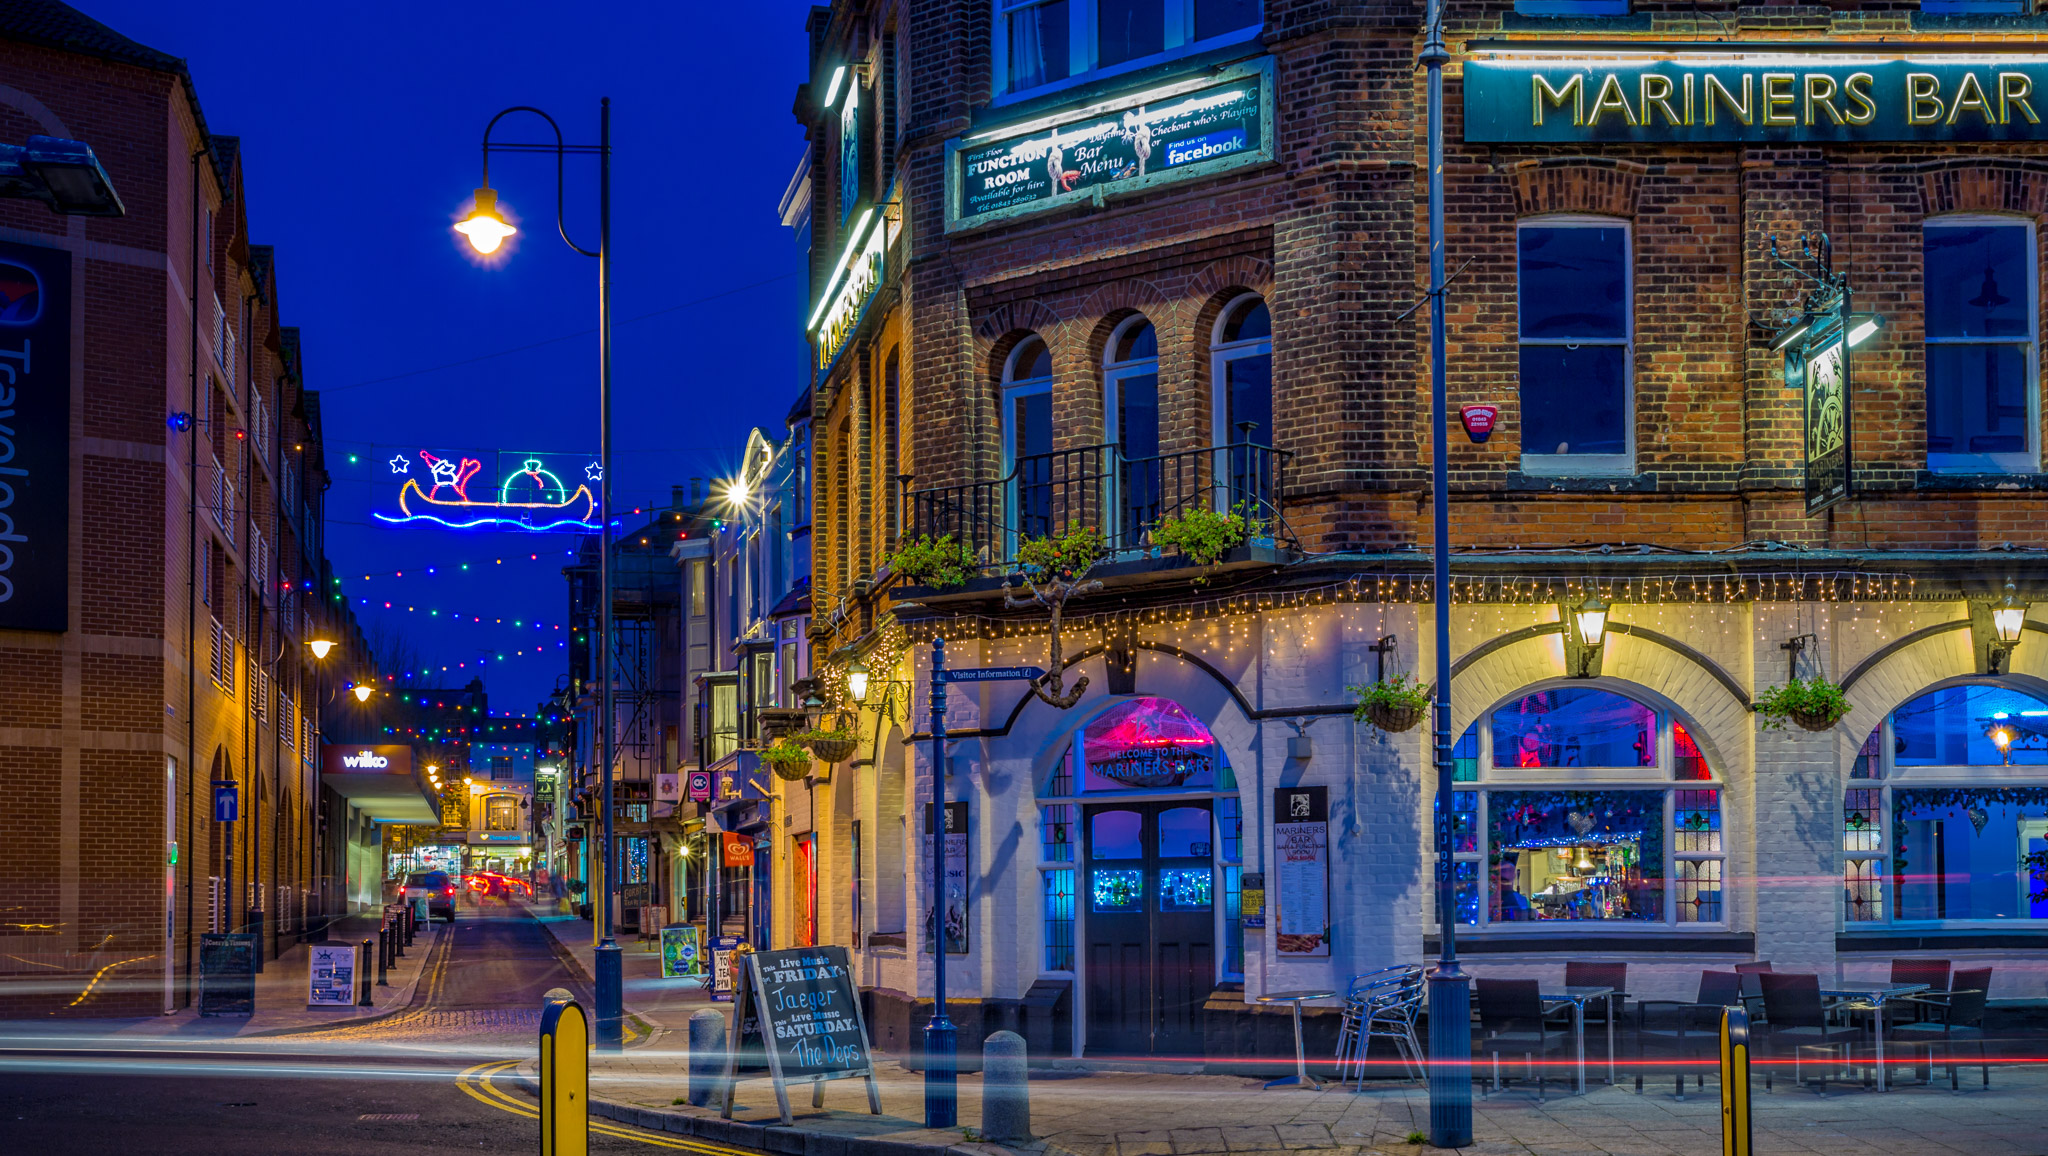 This is Mariners Bar directly opposite Ramsgate Harbour, looking towards York Street.